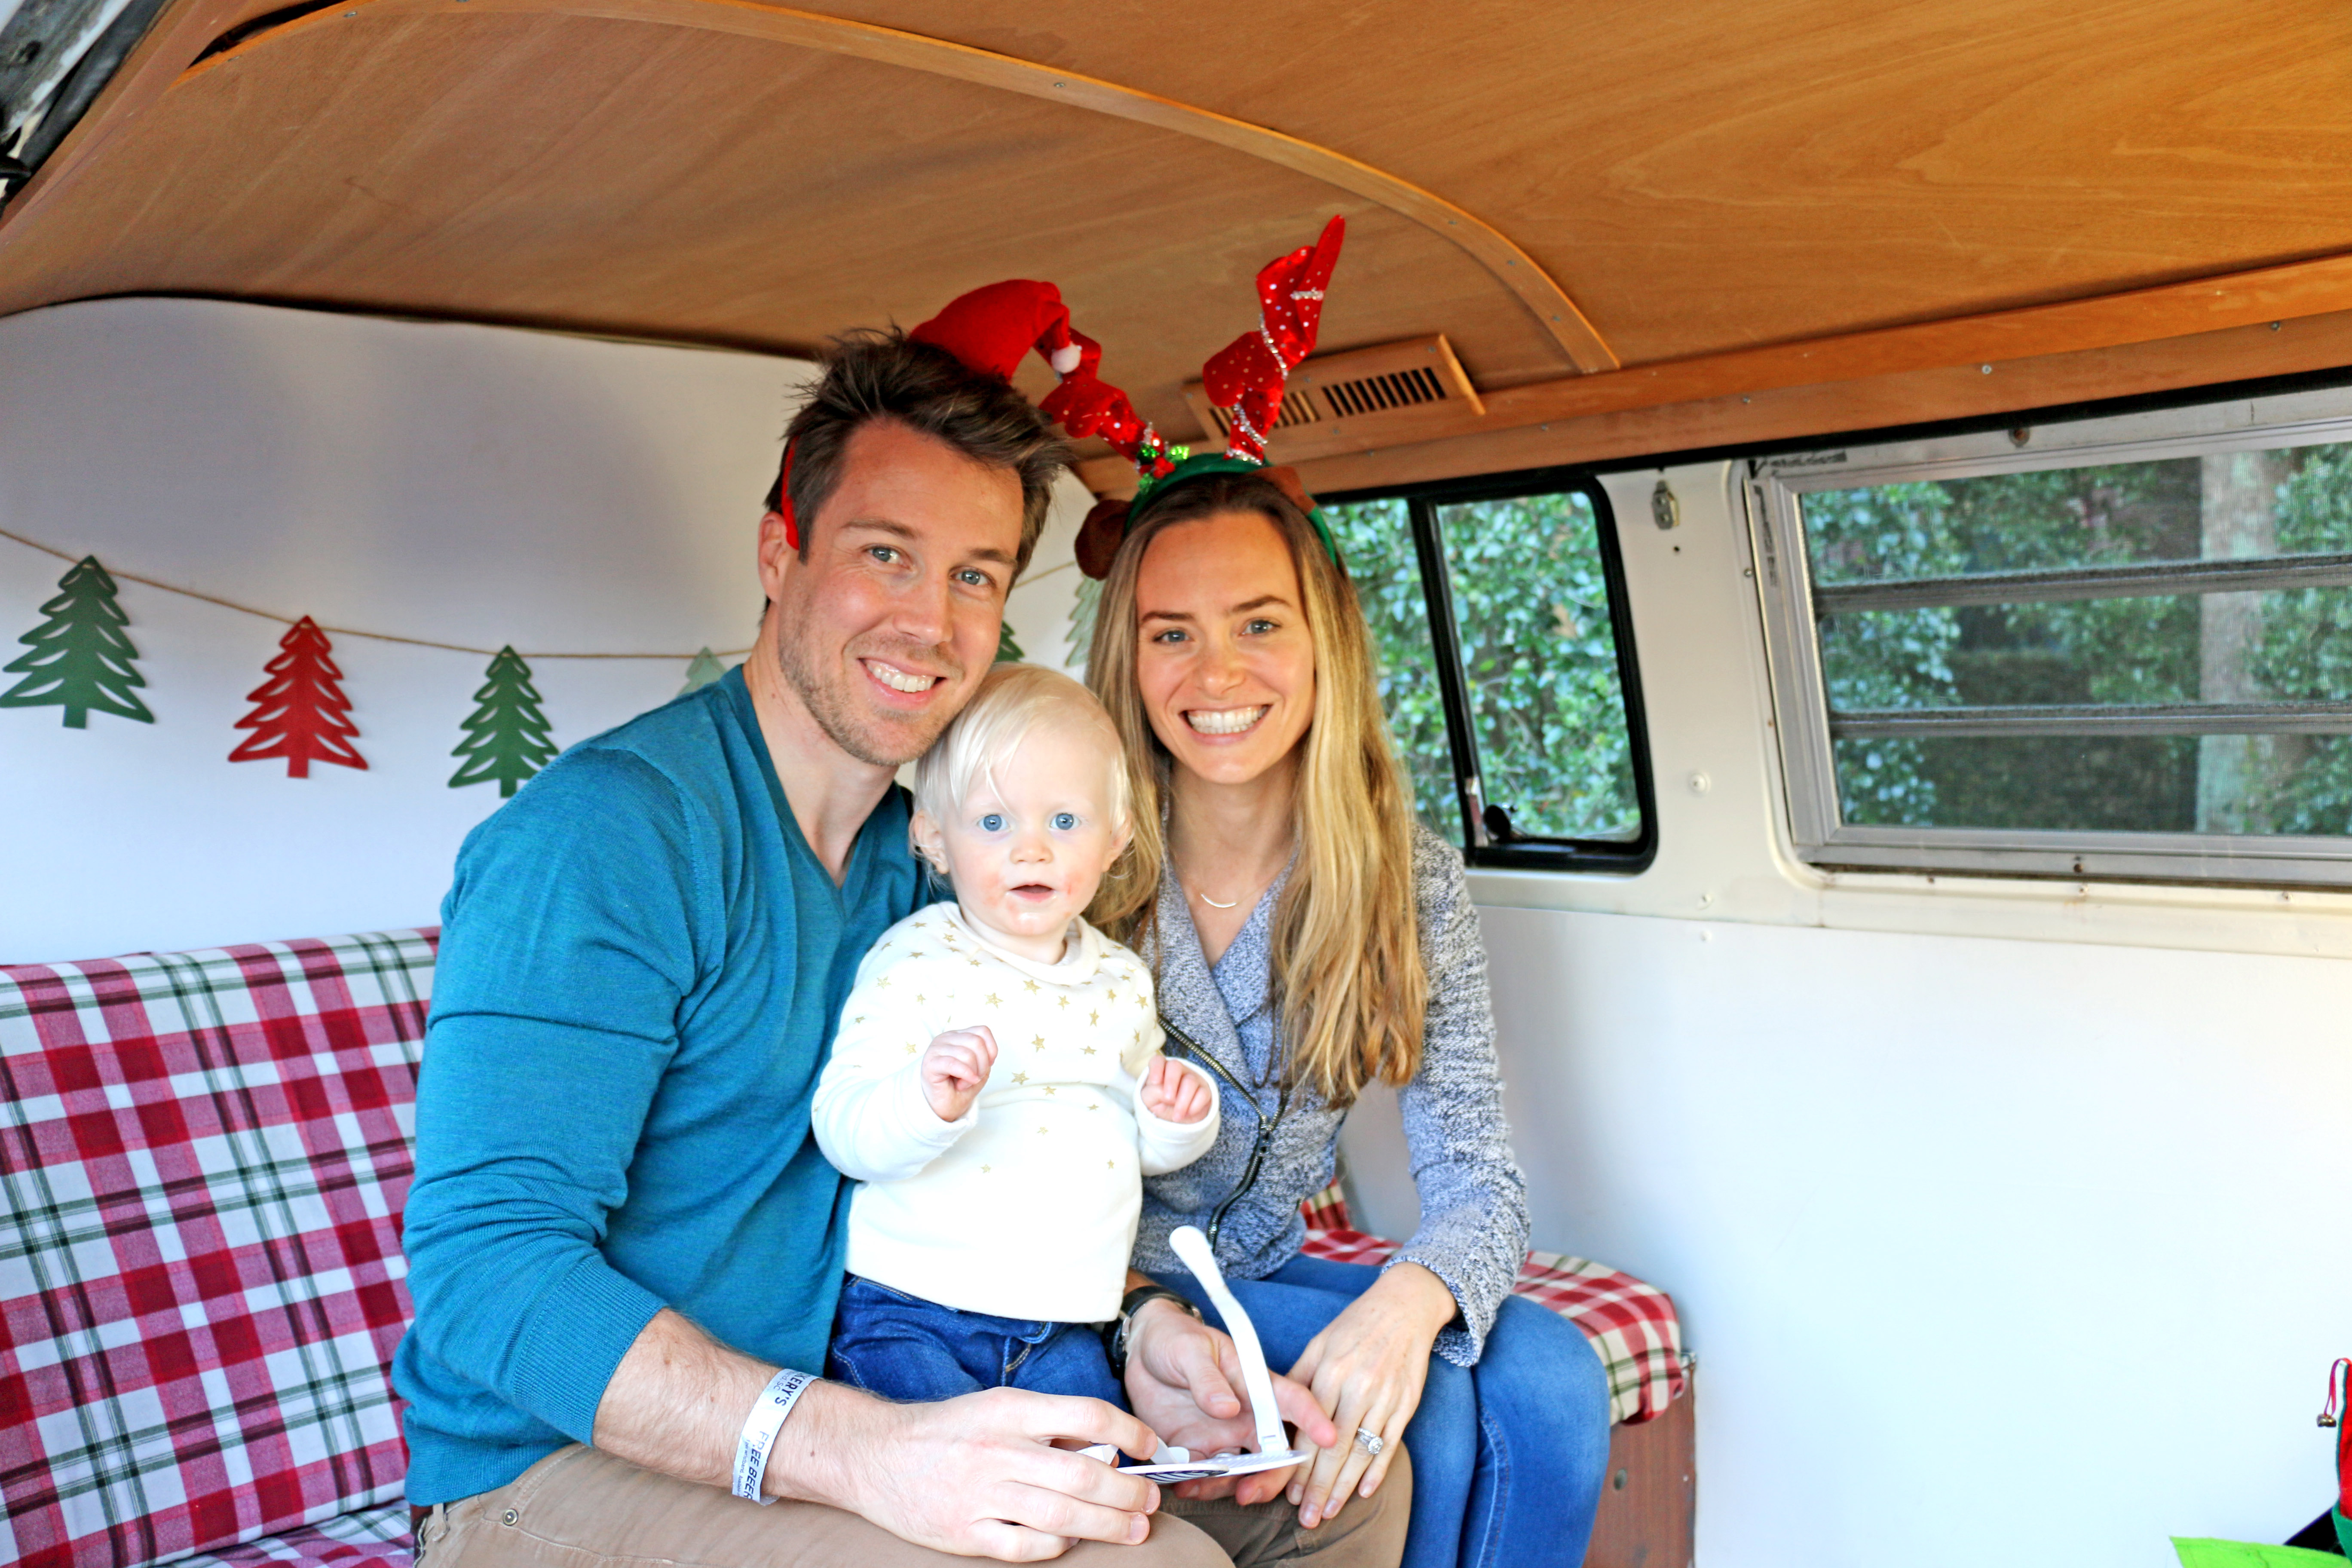 We're the Millers — Bryce, Avery and Jill Miller take an adorable family photo.